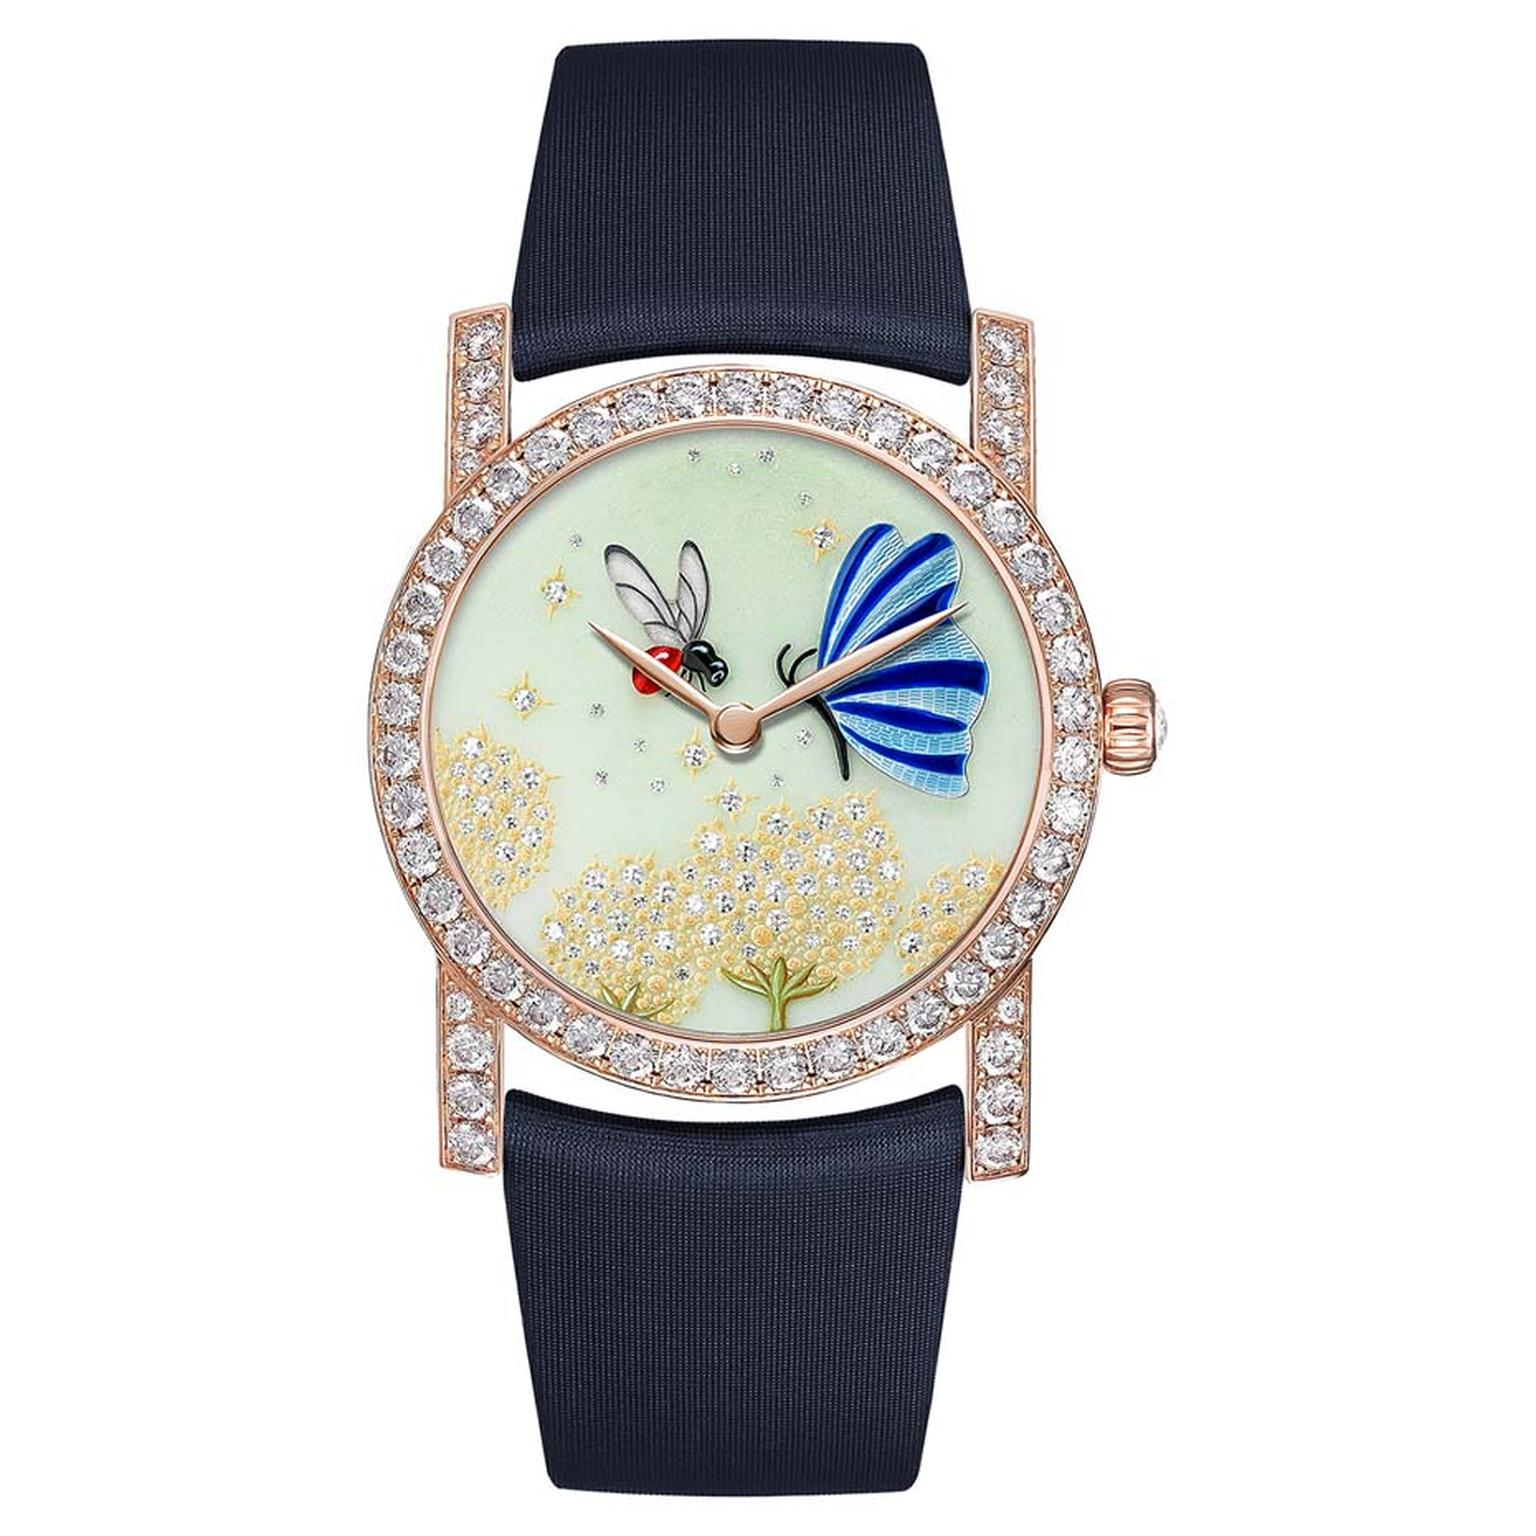 Chaumet Attrape-moi…si tu m'aimes collection watch featuring a bee and a butterfly